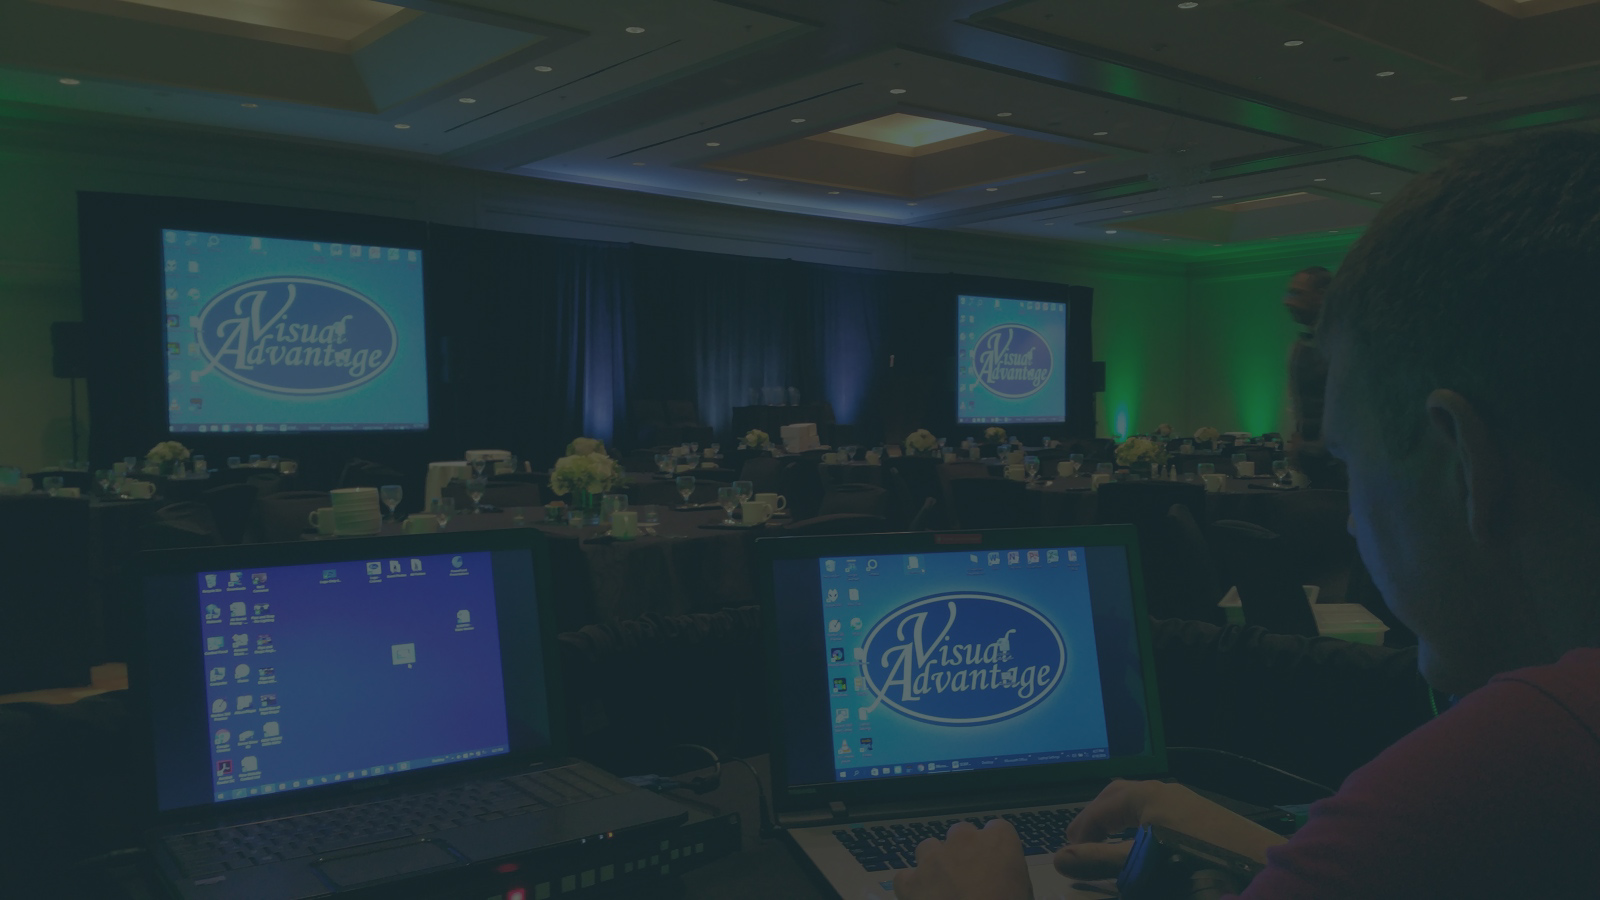 ON-SITE TECH SUPPORT - Our Tech(s) will stay and operate the equipment during your event. We travel throughout Florida for any large event where our technicians are needed.